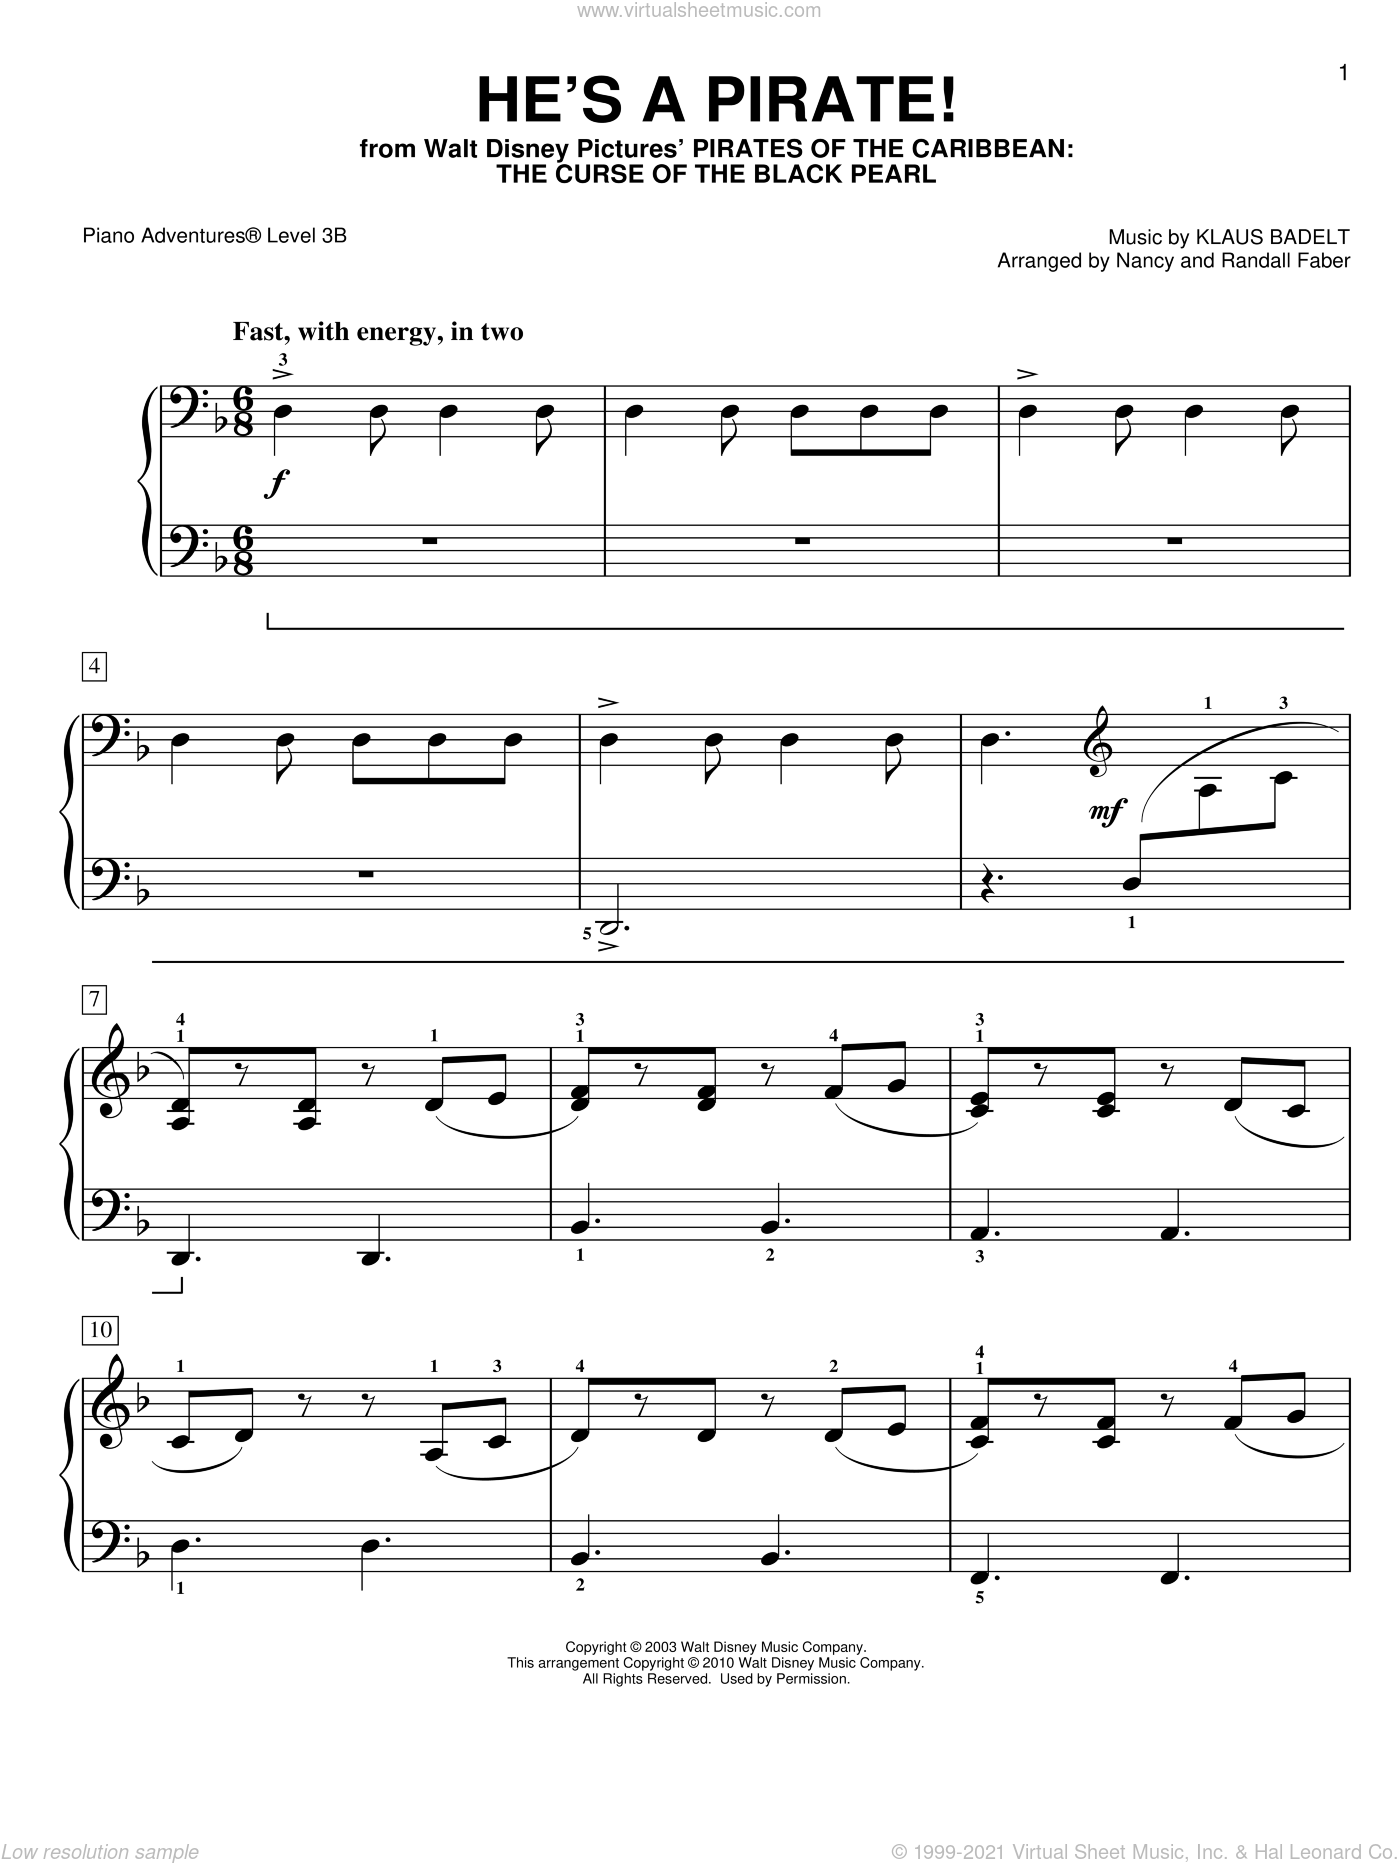 He's a Pirate sheet music for piano solo by Nancy and Randall Faber